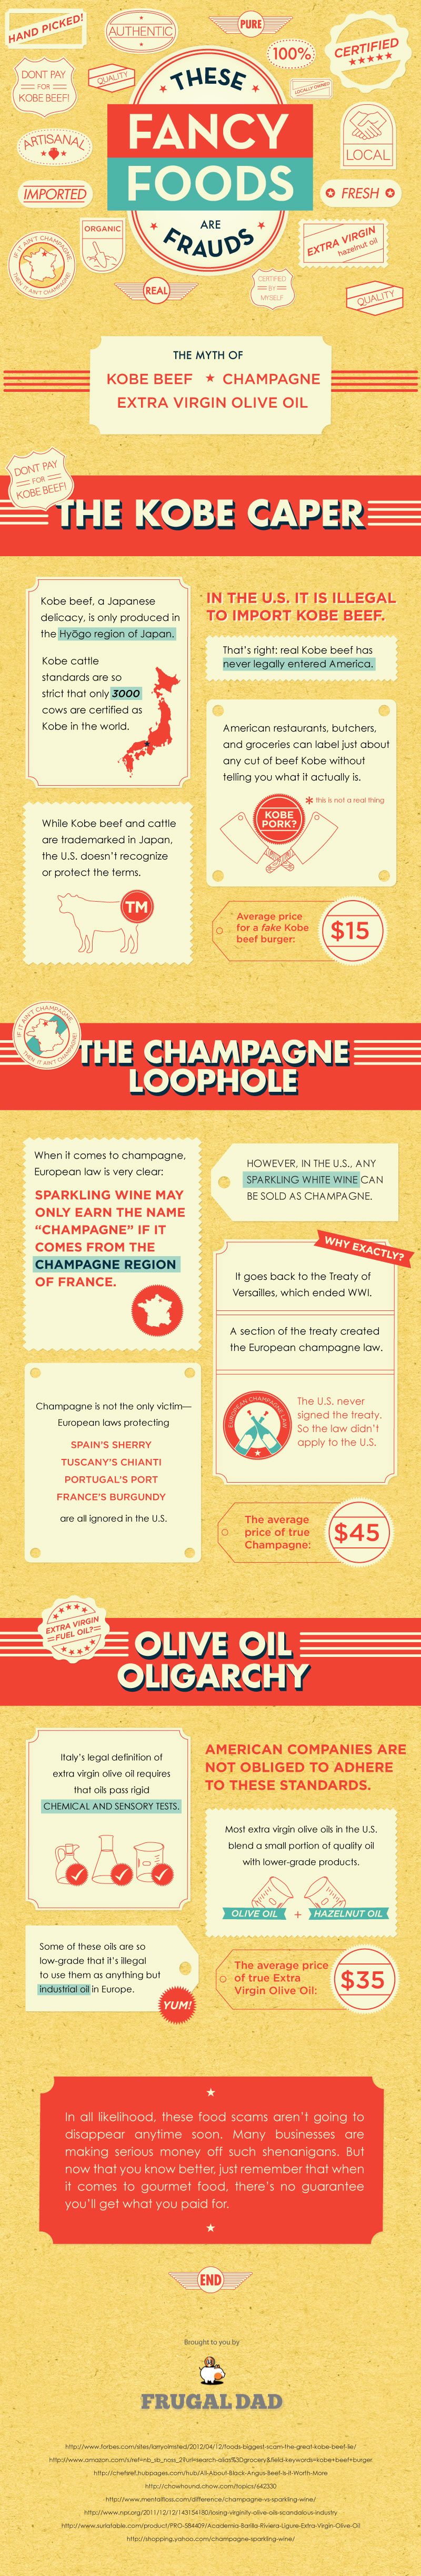 These-Fancy-Foods-Are-Frauds-infographic